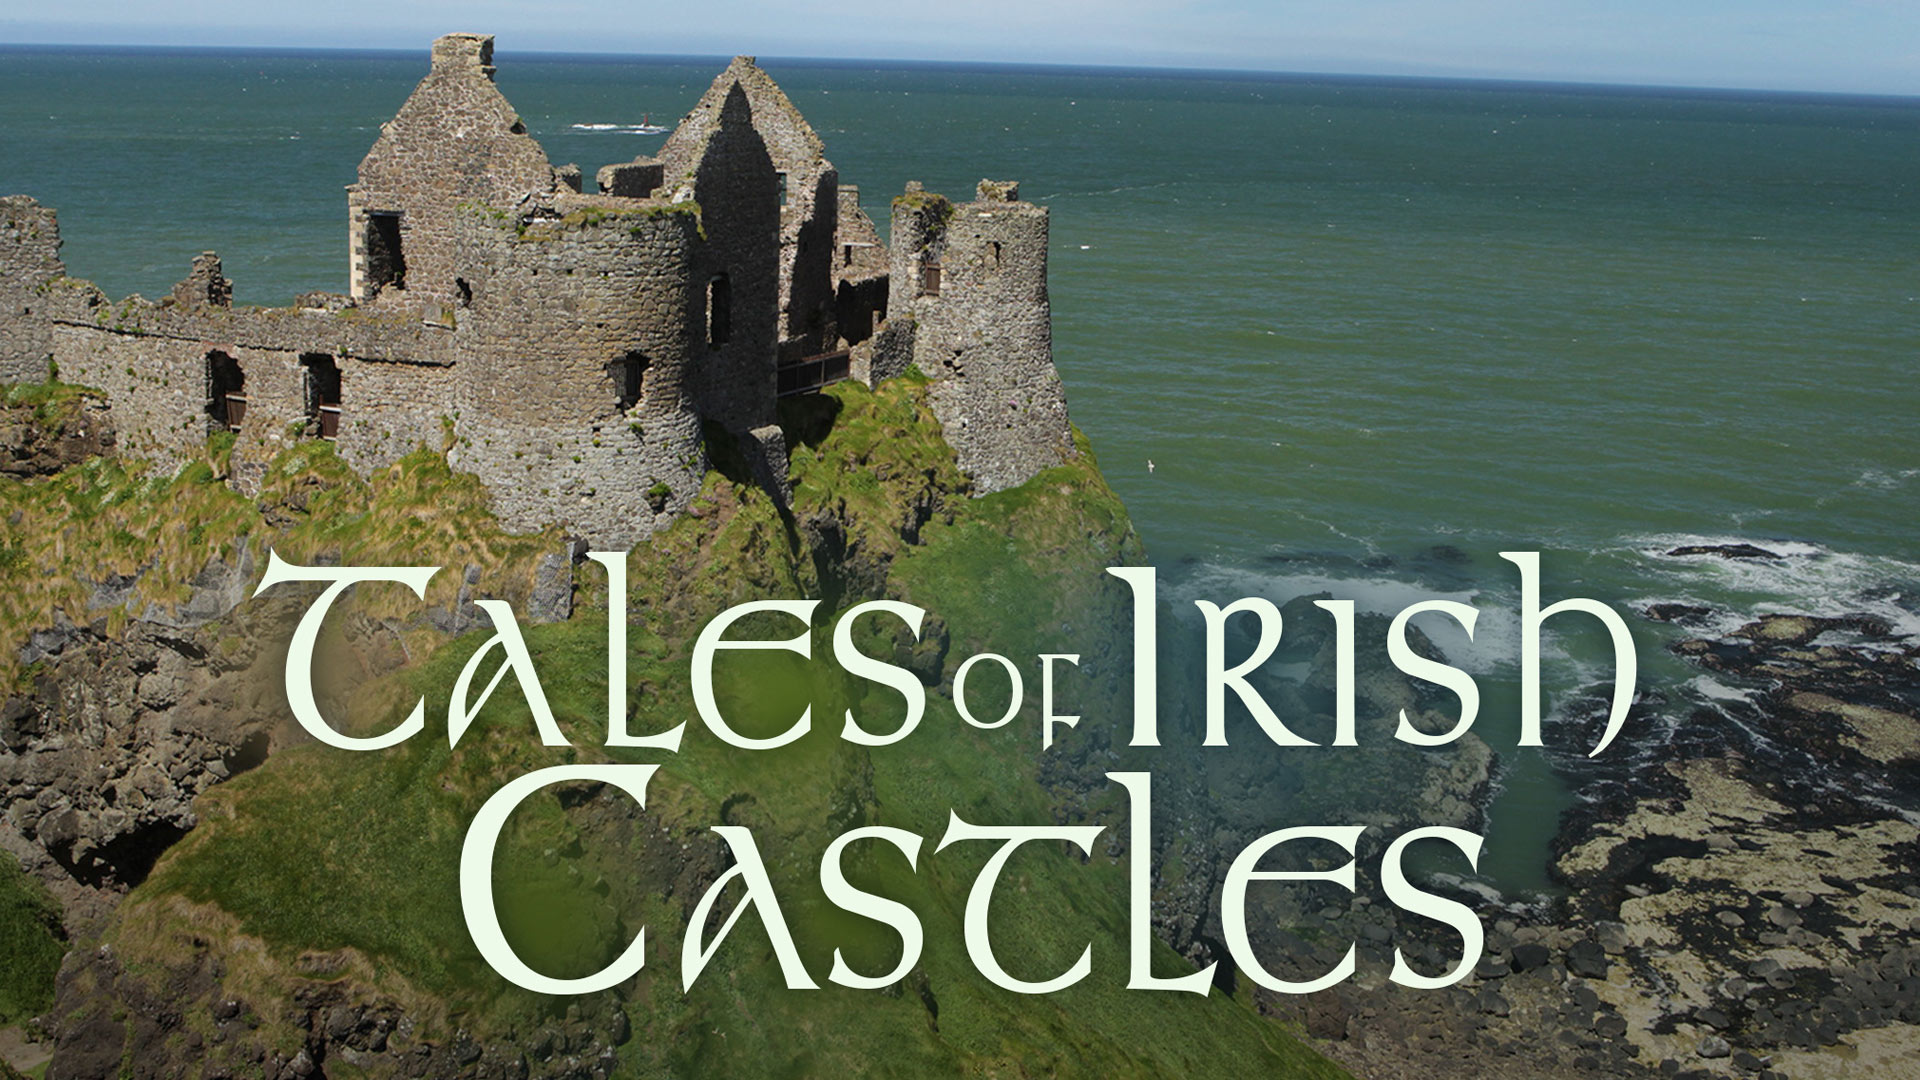 Tales of Irish Castles - Series 1